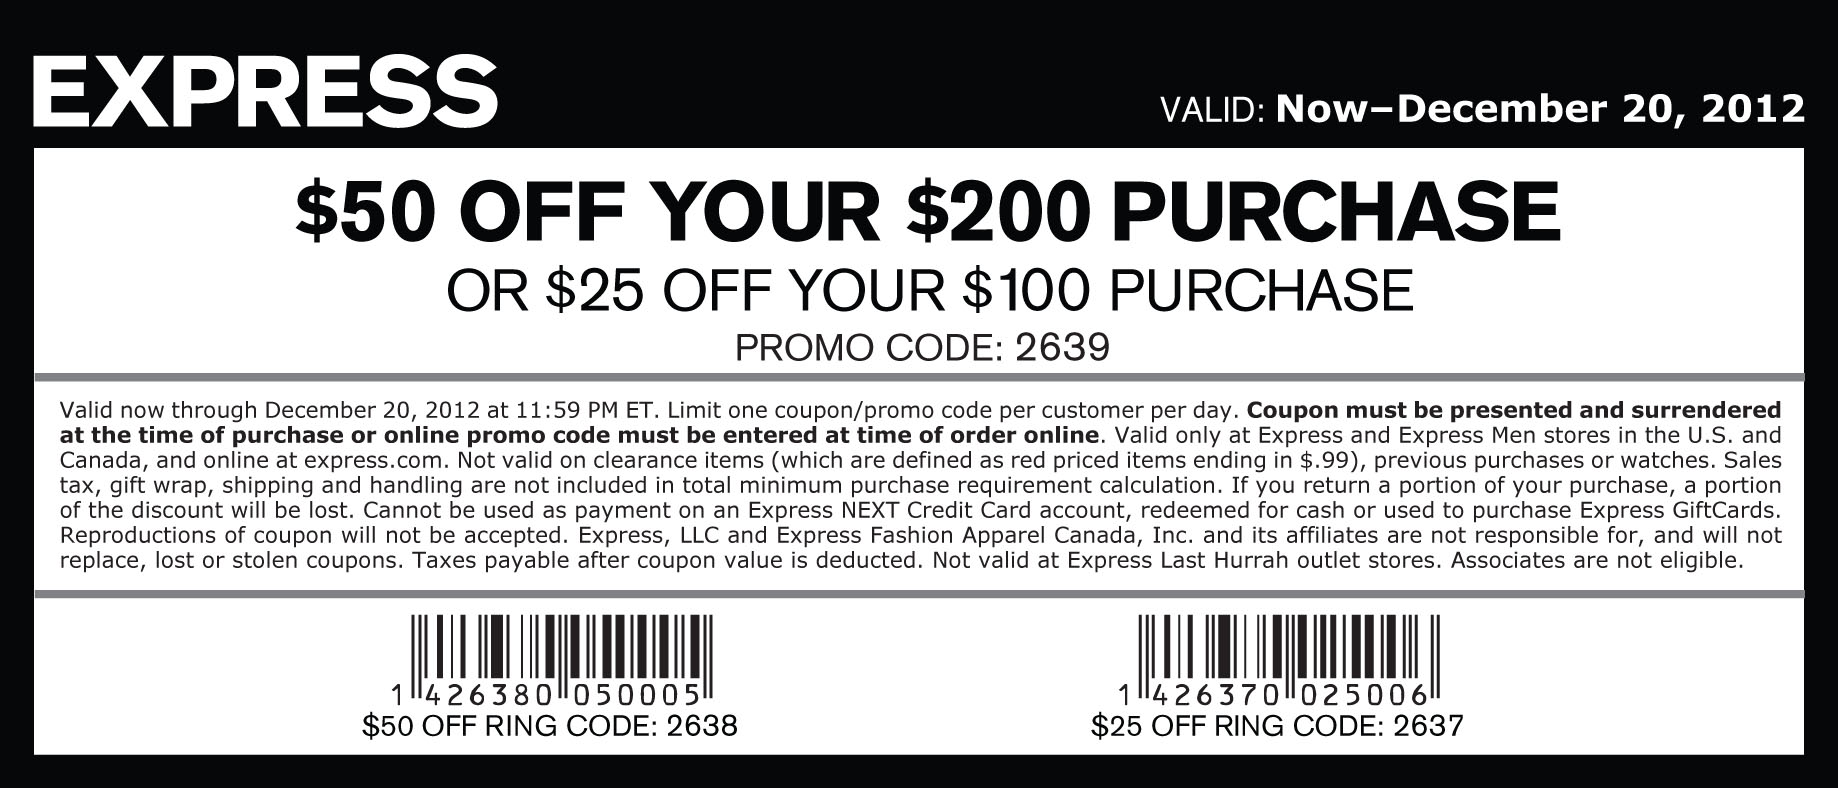 Xdp coupon code